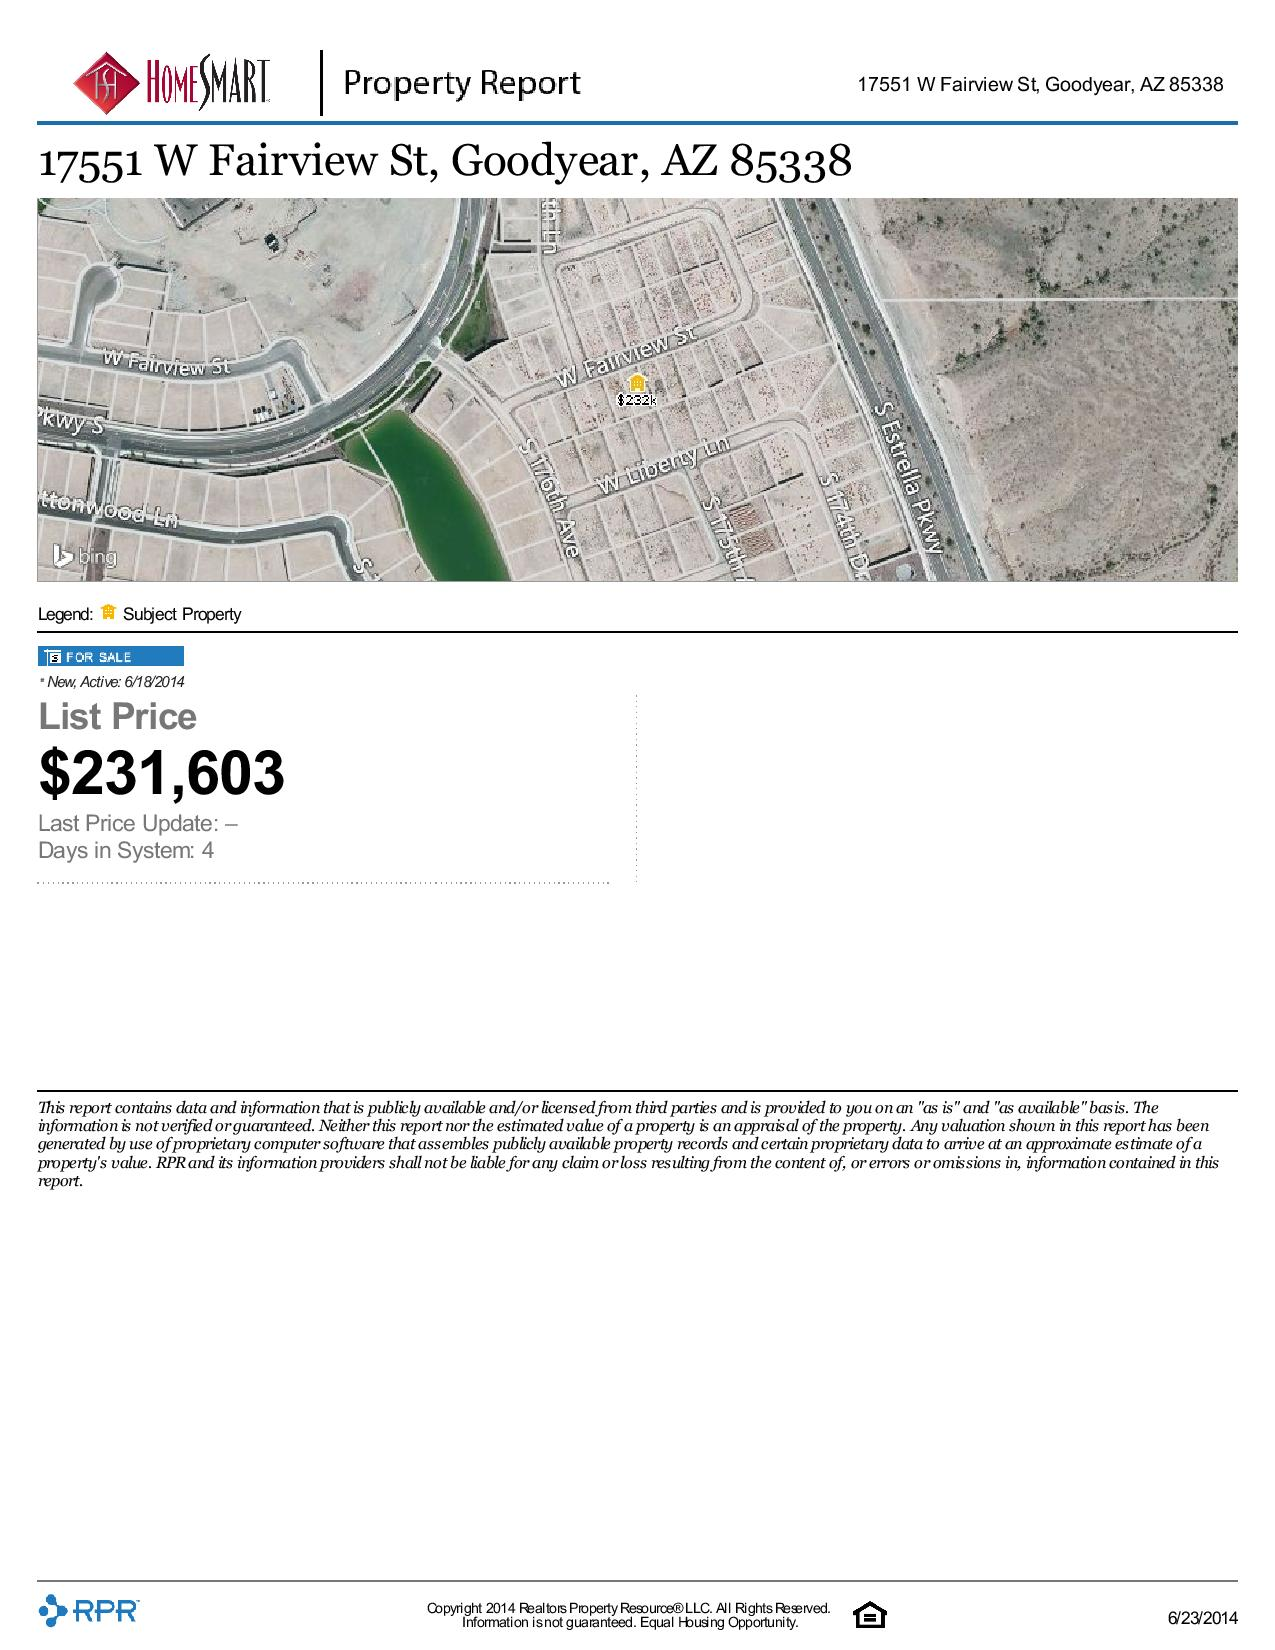 17551-W-Fairview-St-Goodyear-AZ-85338-page-002